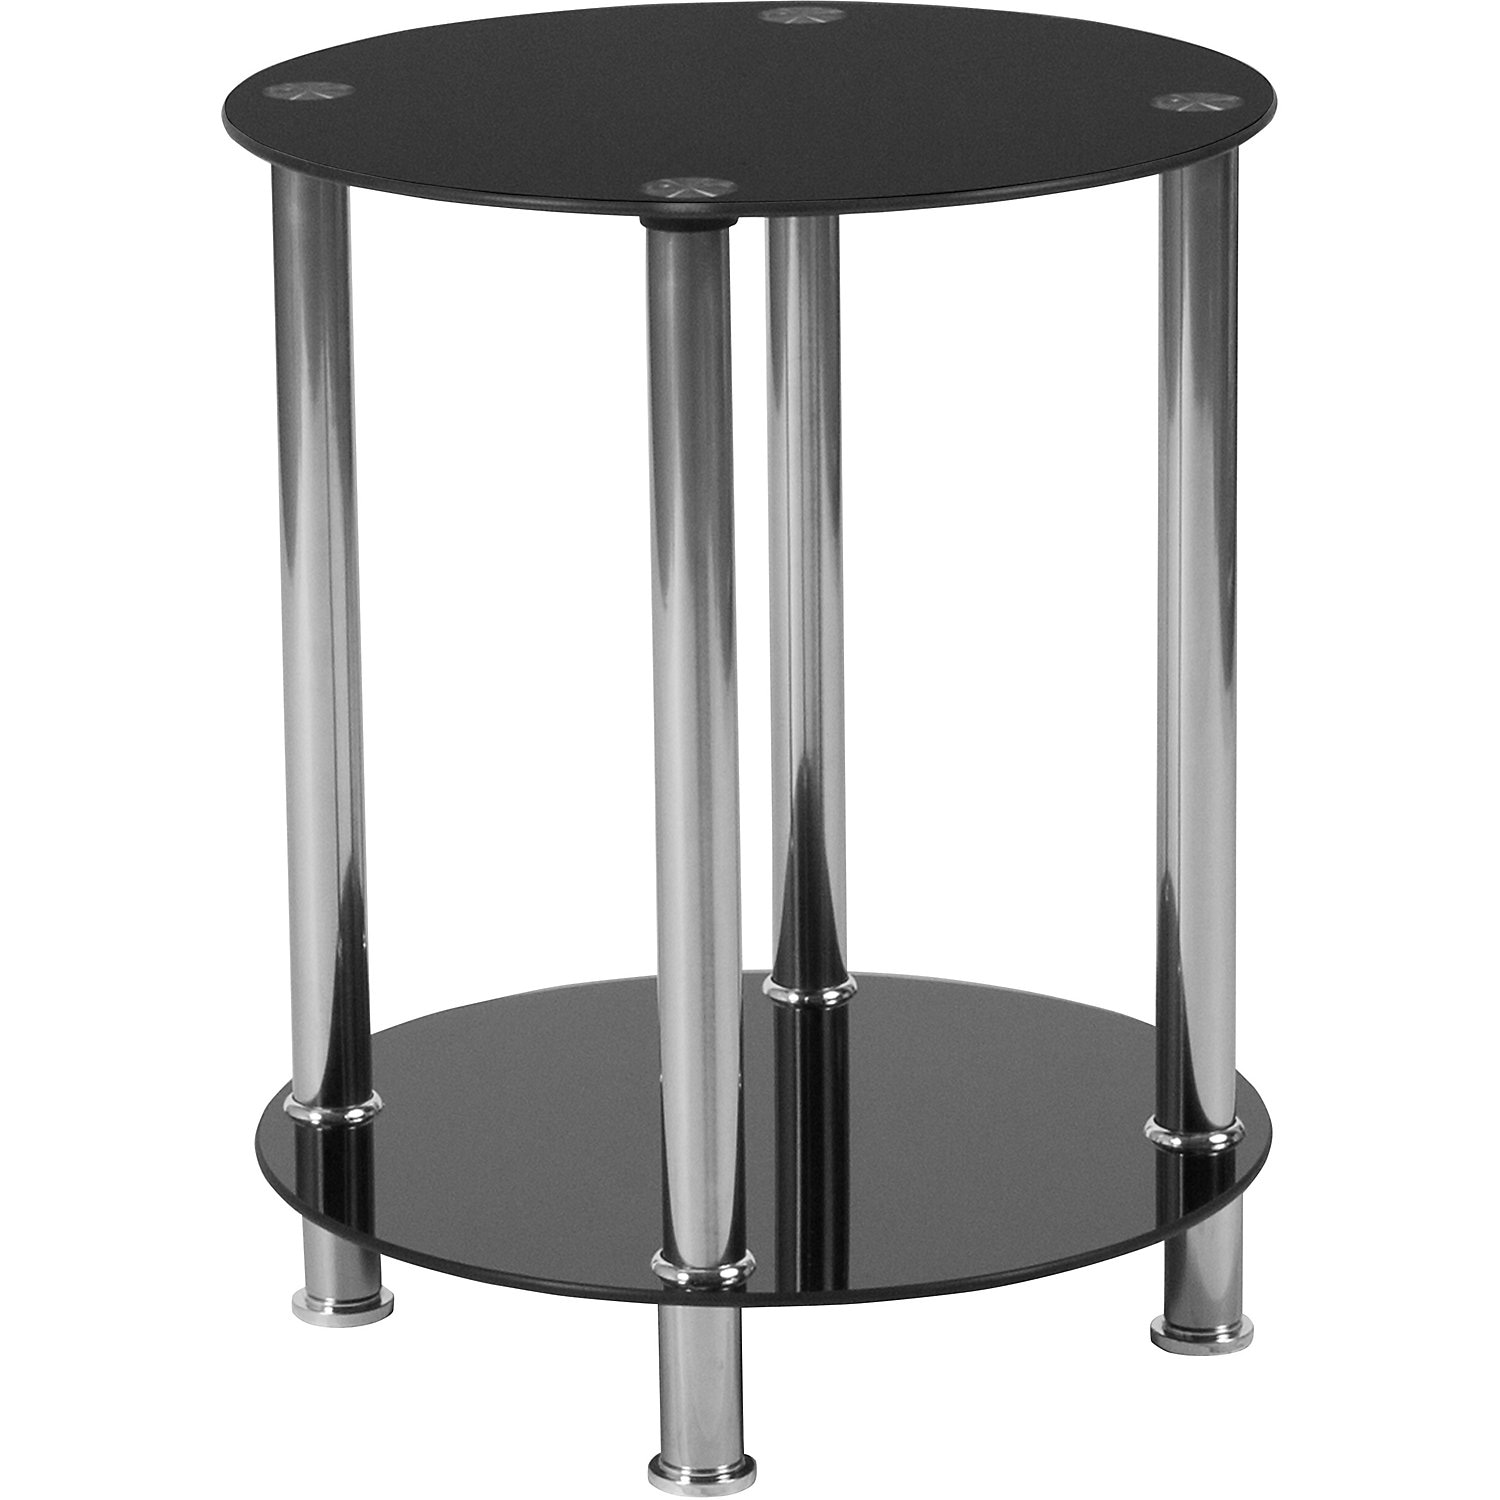 fred black glass end table accent and occasional furniture dressing ornaments pottery barn white dishes rustic edmonton bedside tables media console folding coffee turquoise